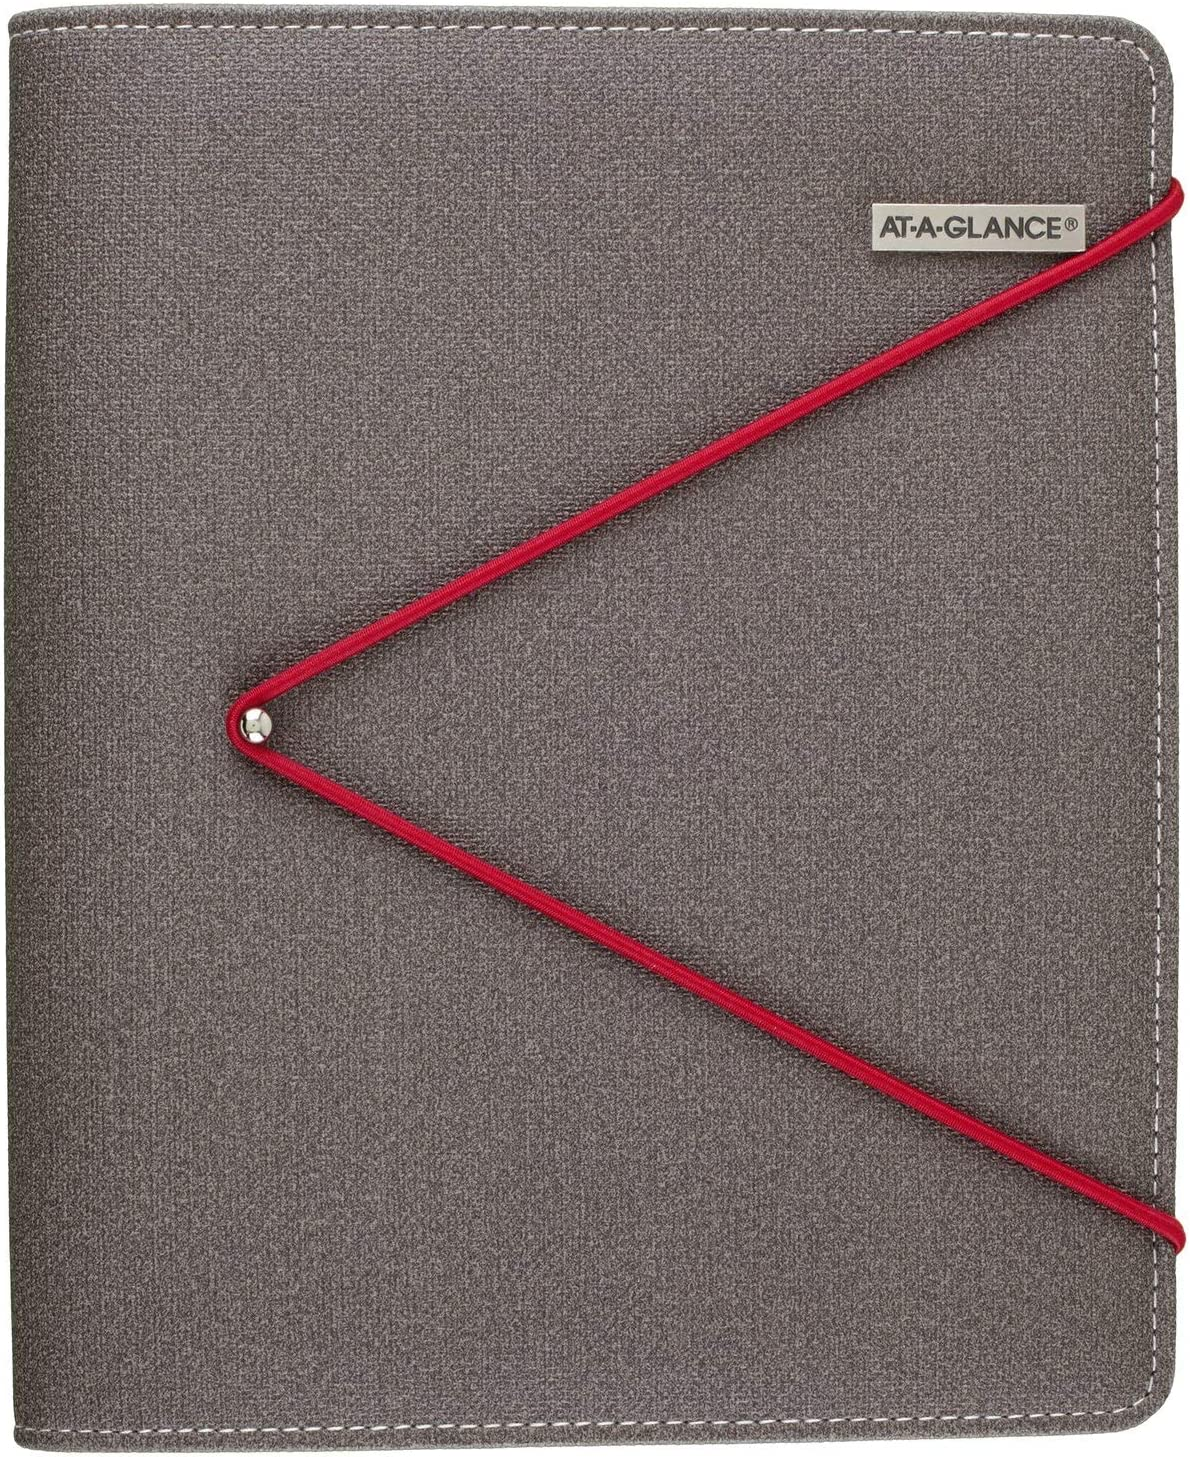 """AT-A-GLANCE Faux Leather Undated Starter Set, Tread Spine, 7-Ring, 5-1/2"""" x 8-1/2"""", Desk Size, Red Bungee Closure, Fashion, Gray (DR1107-040-13)"""